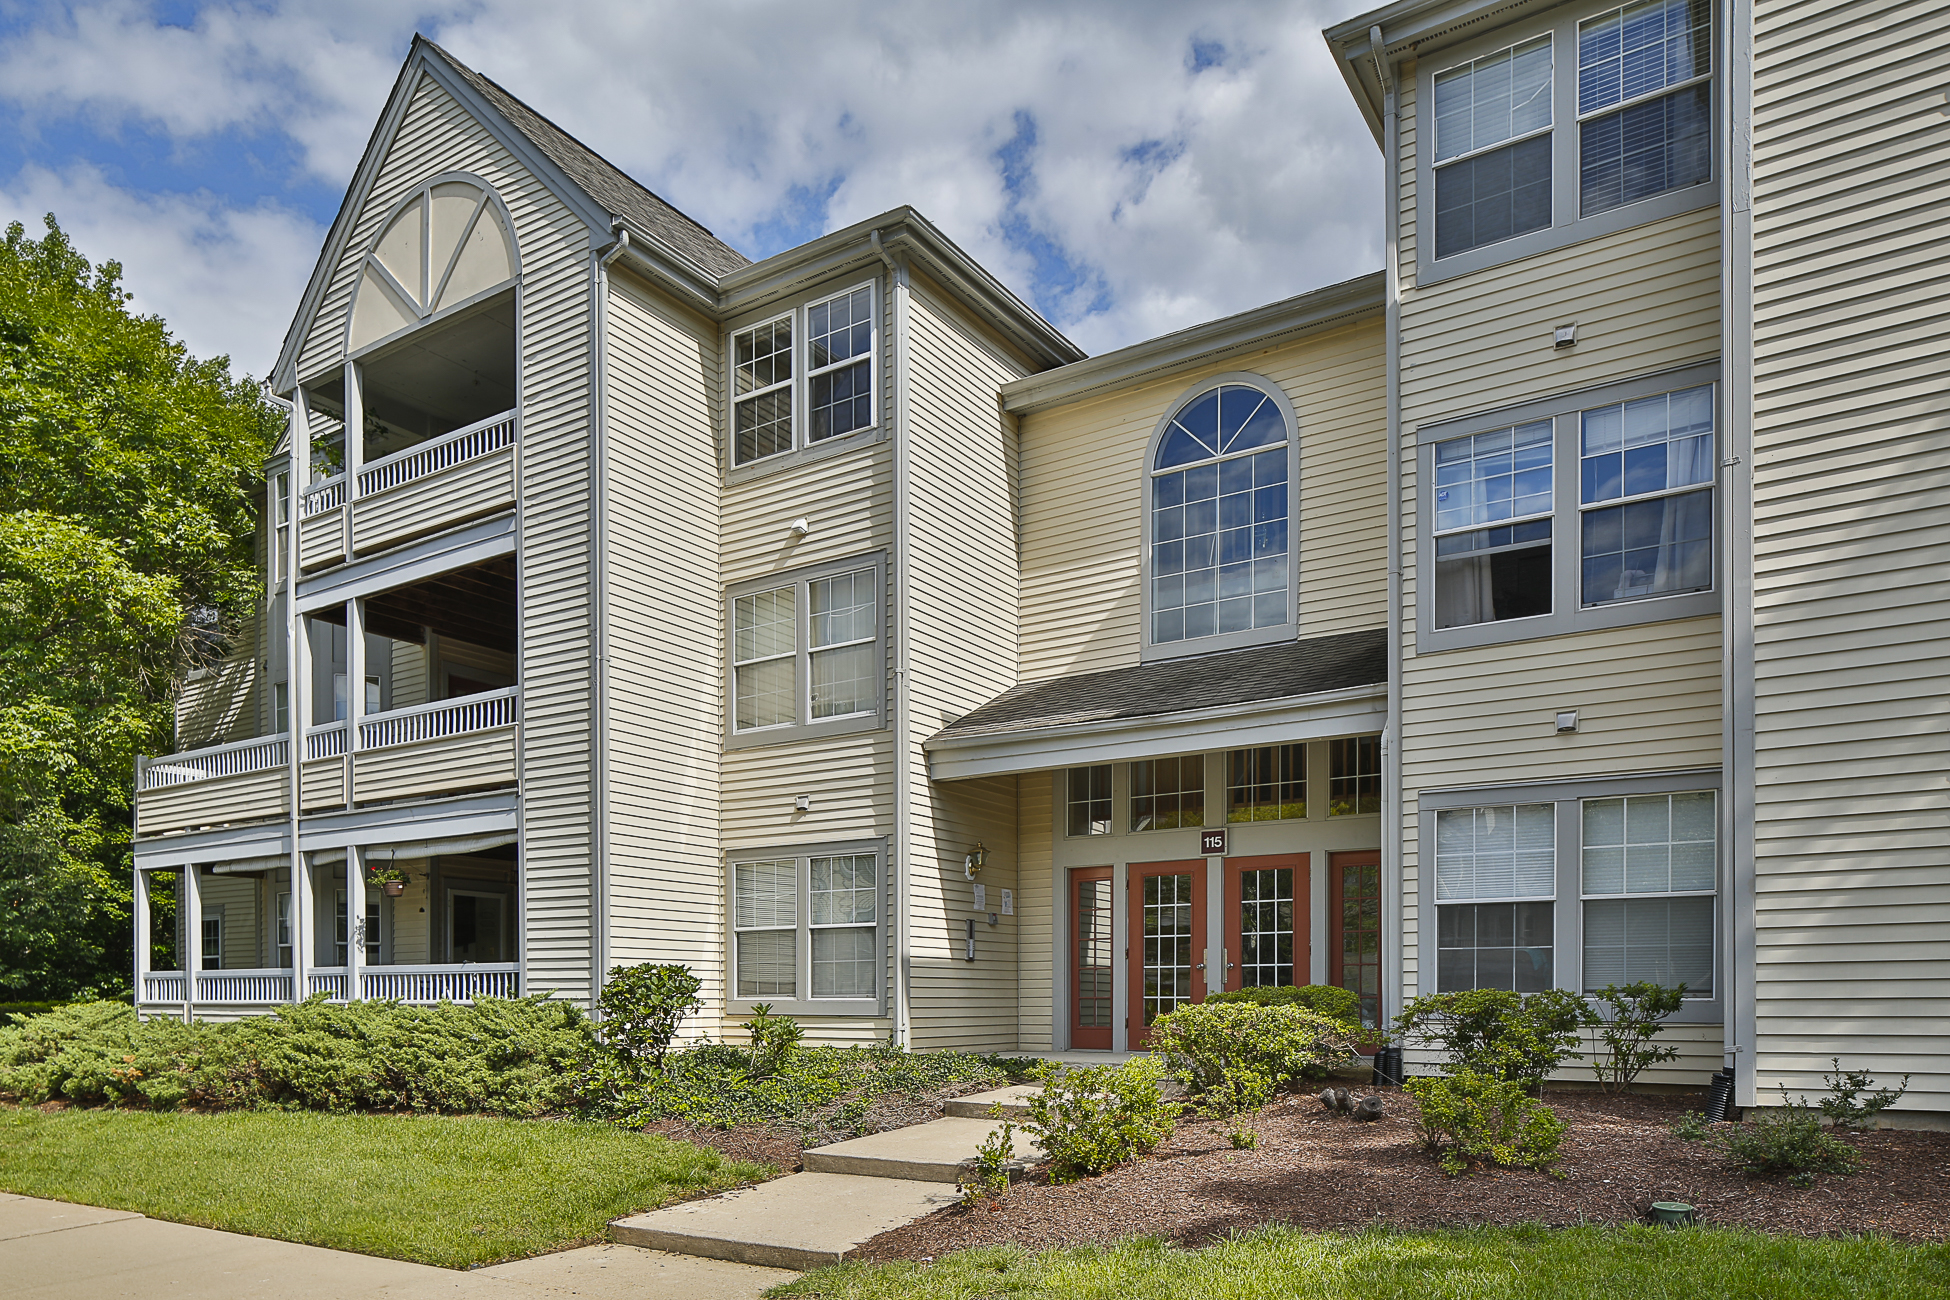 Property For Sale at Two Bedroom Cloister Model in Colonnade Point - West Windsor Township